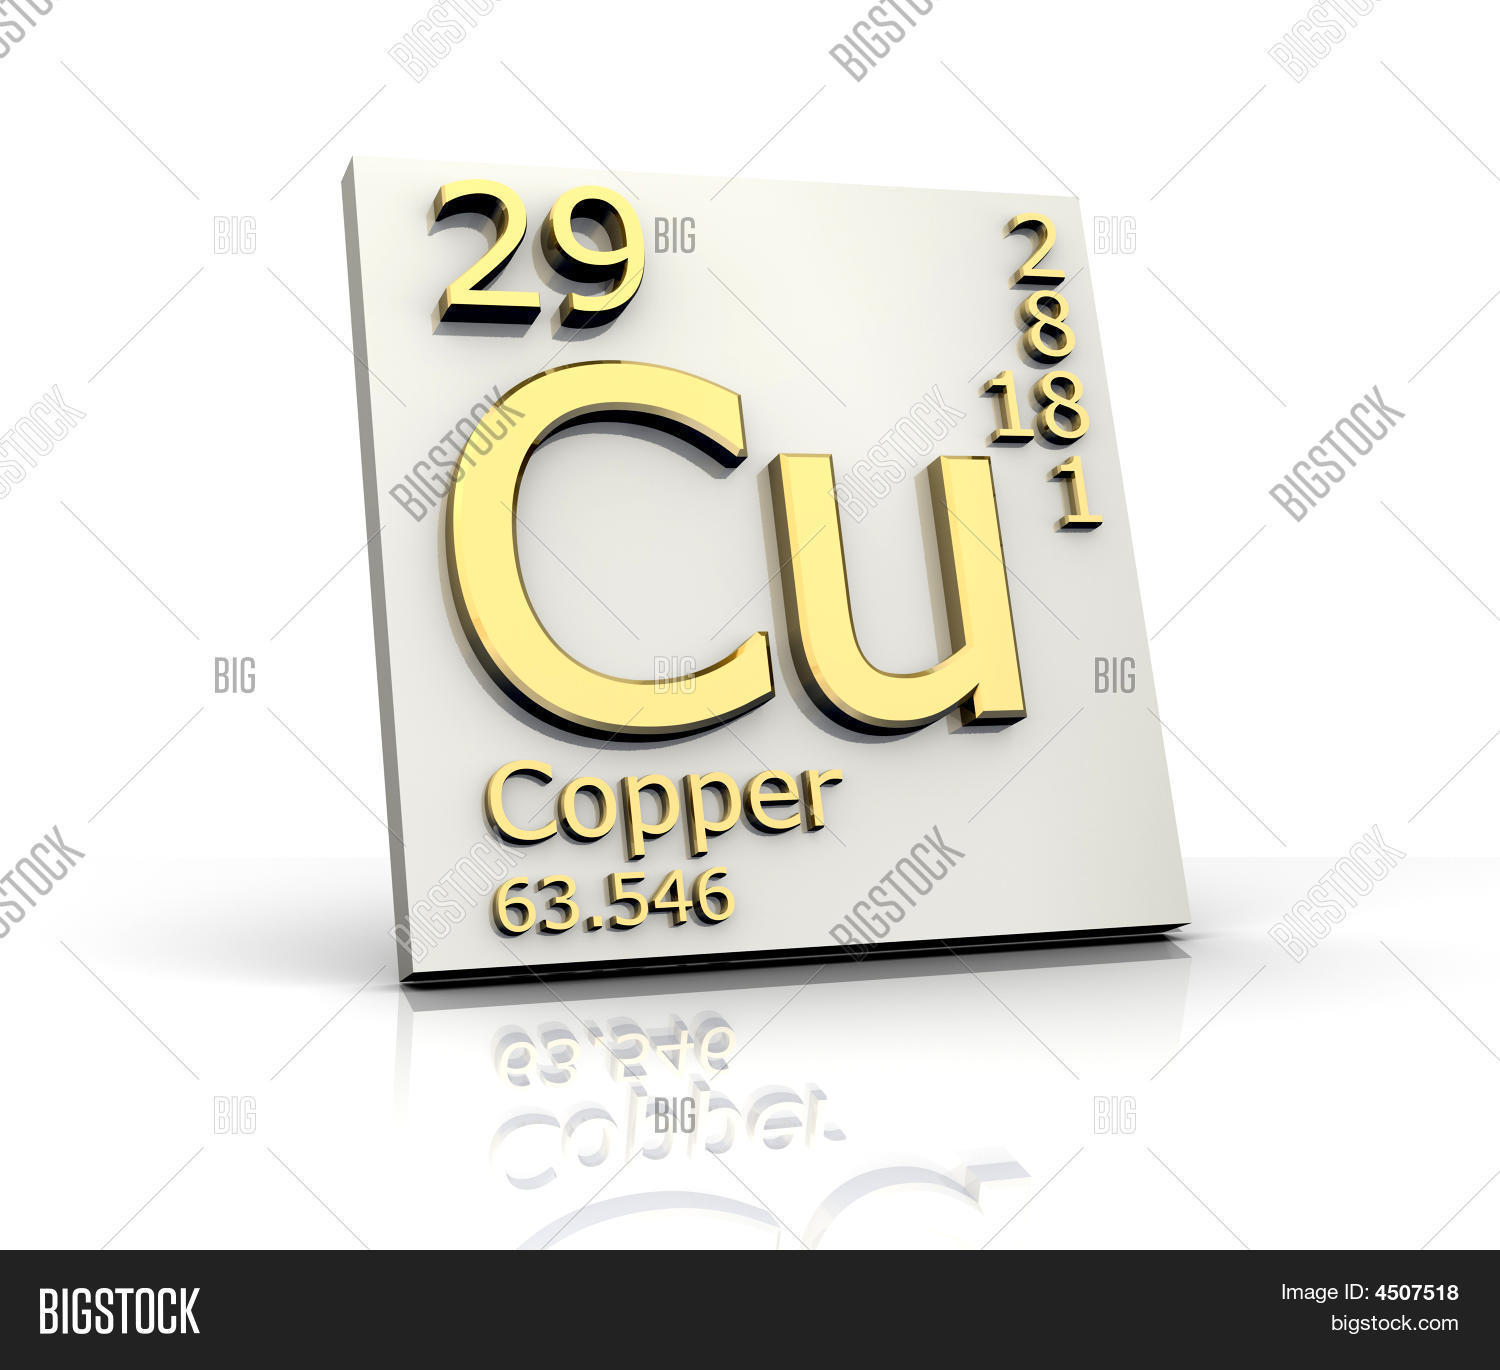 recovery of elemental copper from copper